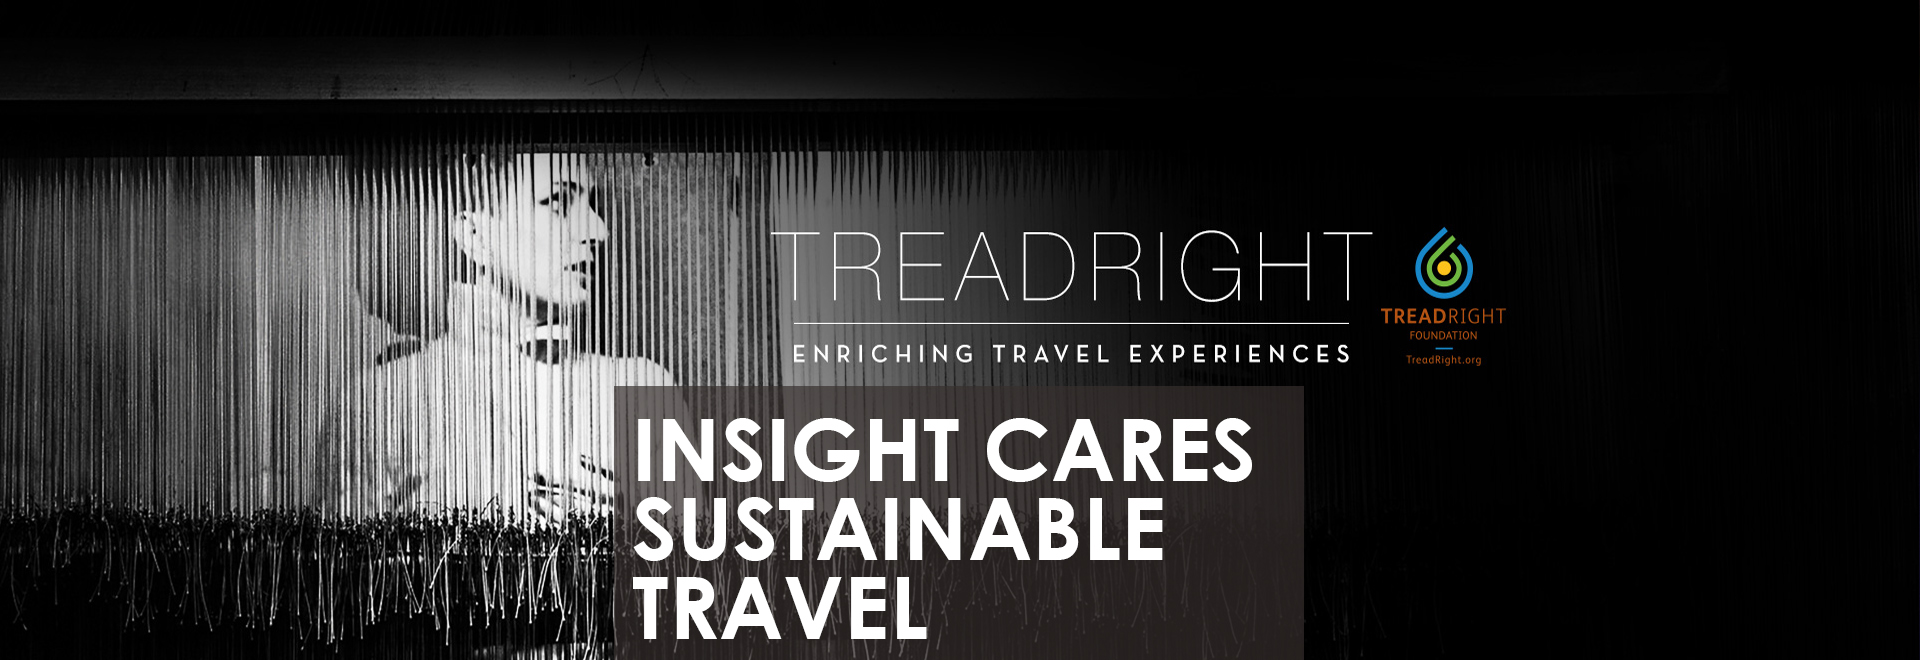 Insight Cares - Sustainable Travel